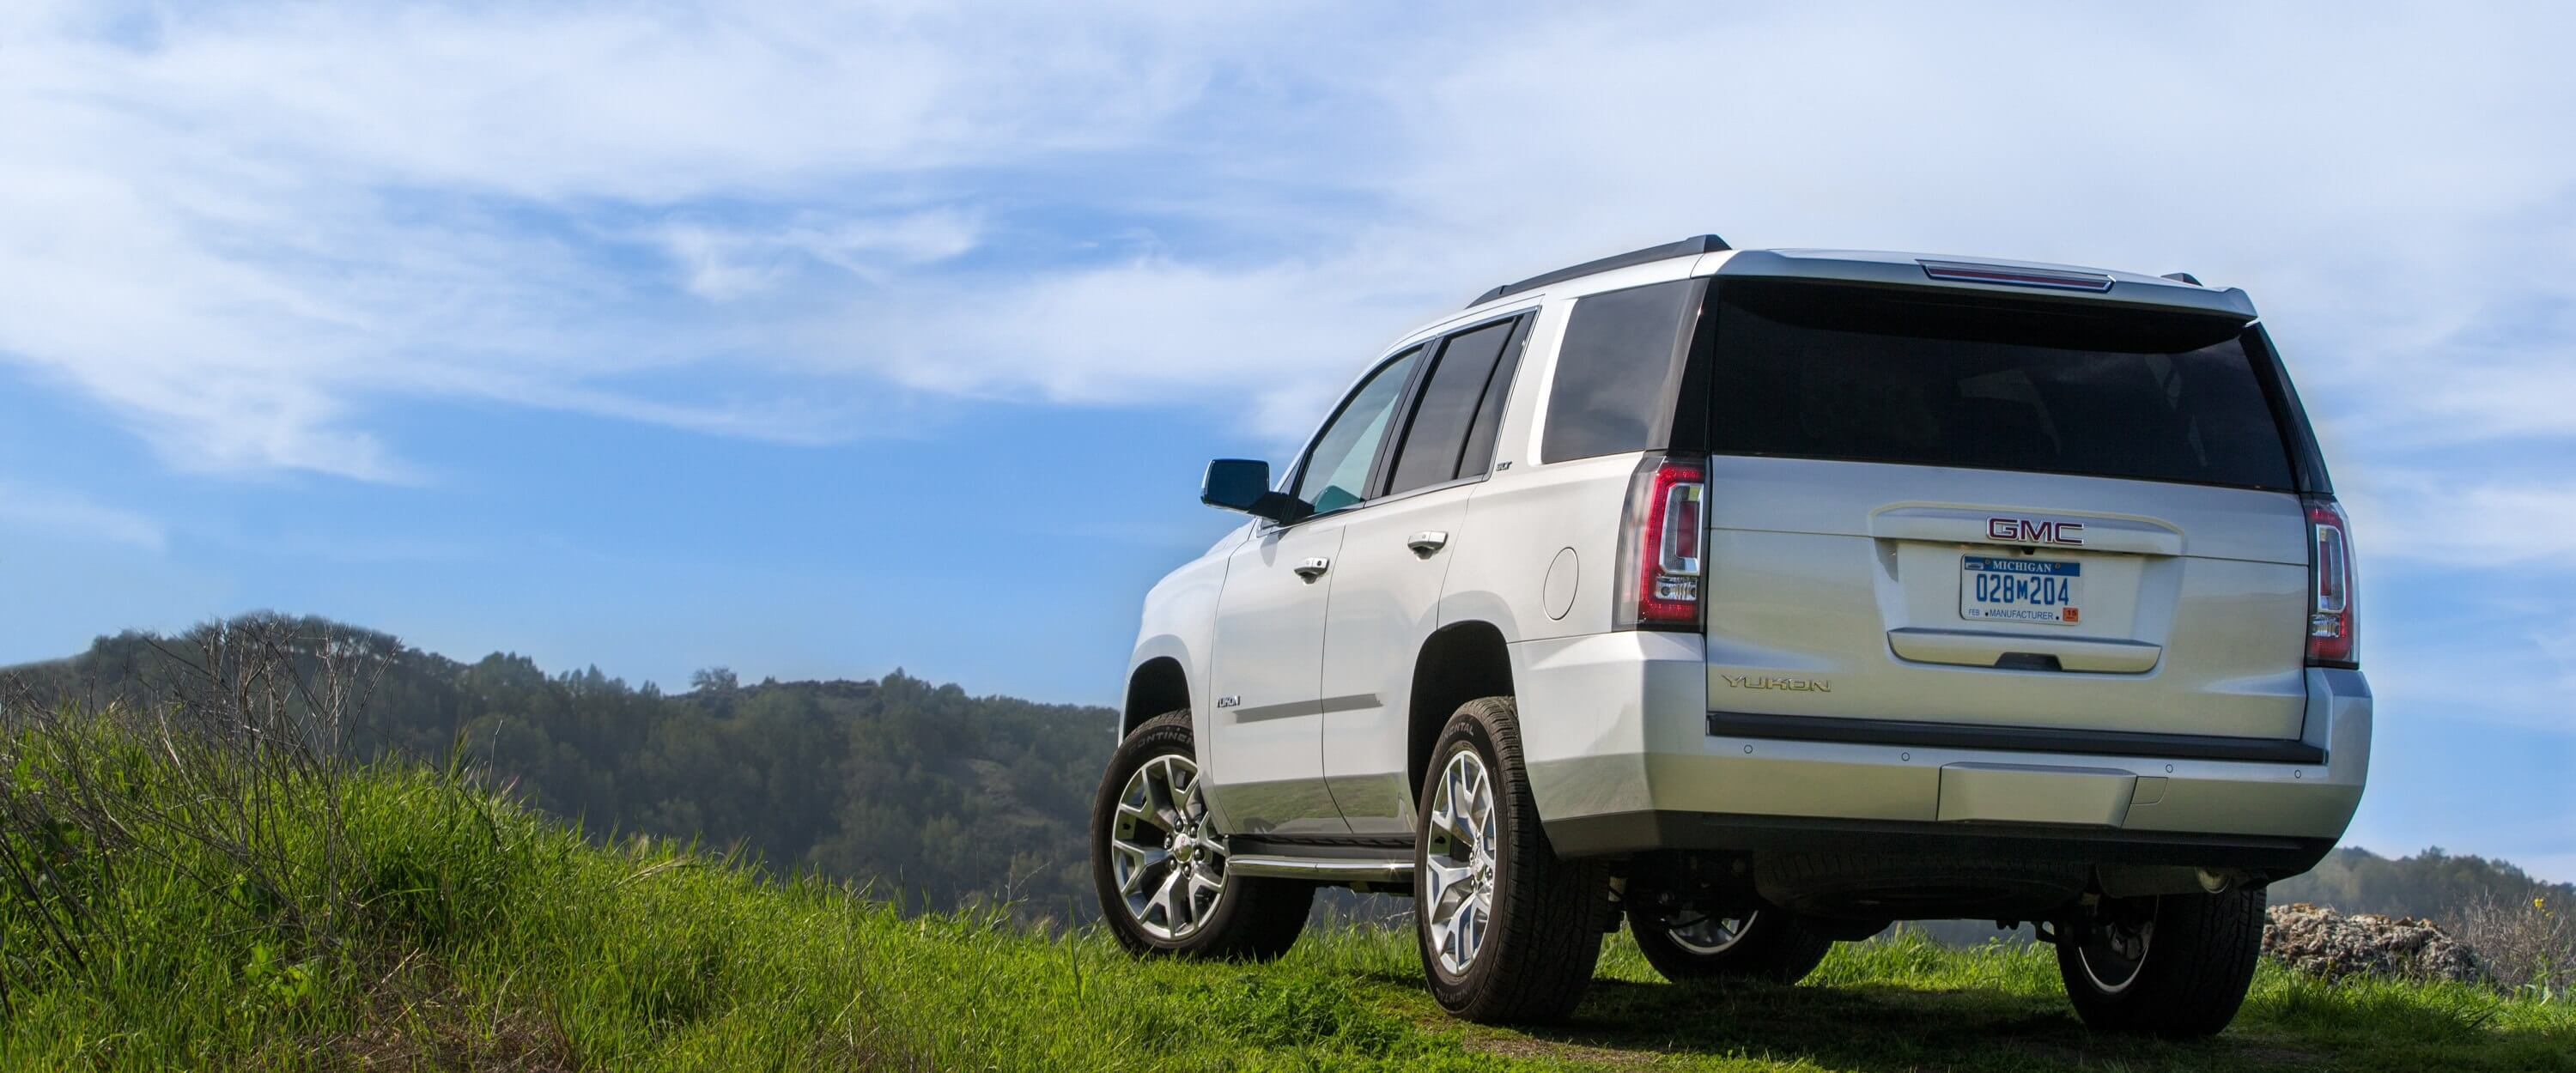 2015 GMC Yukon SLT Feature